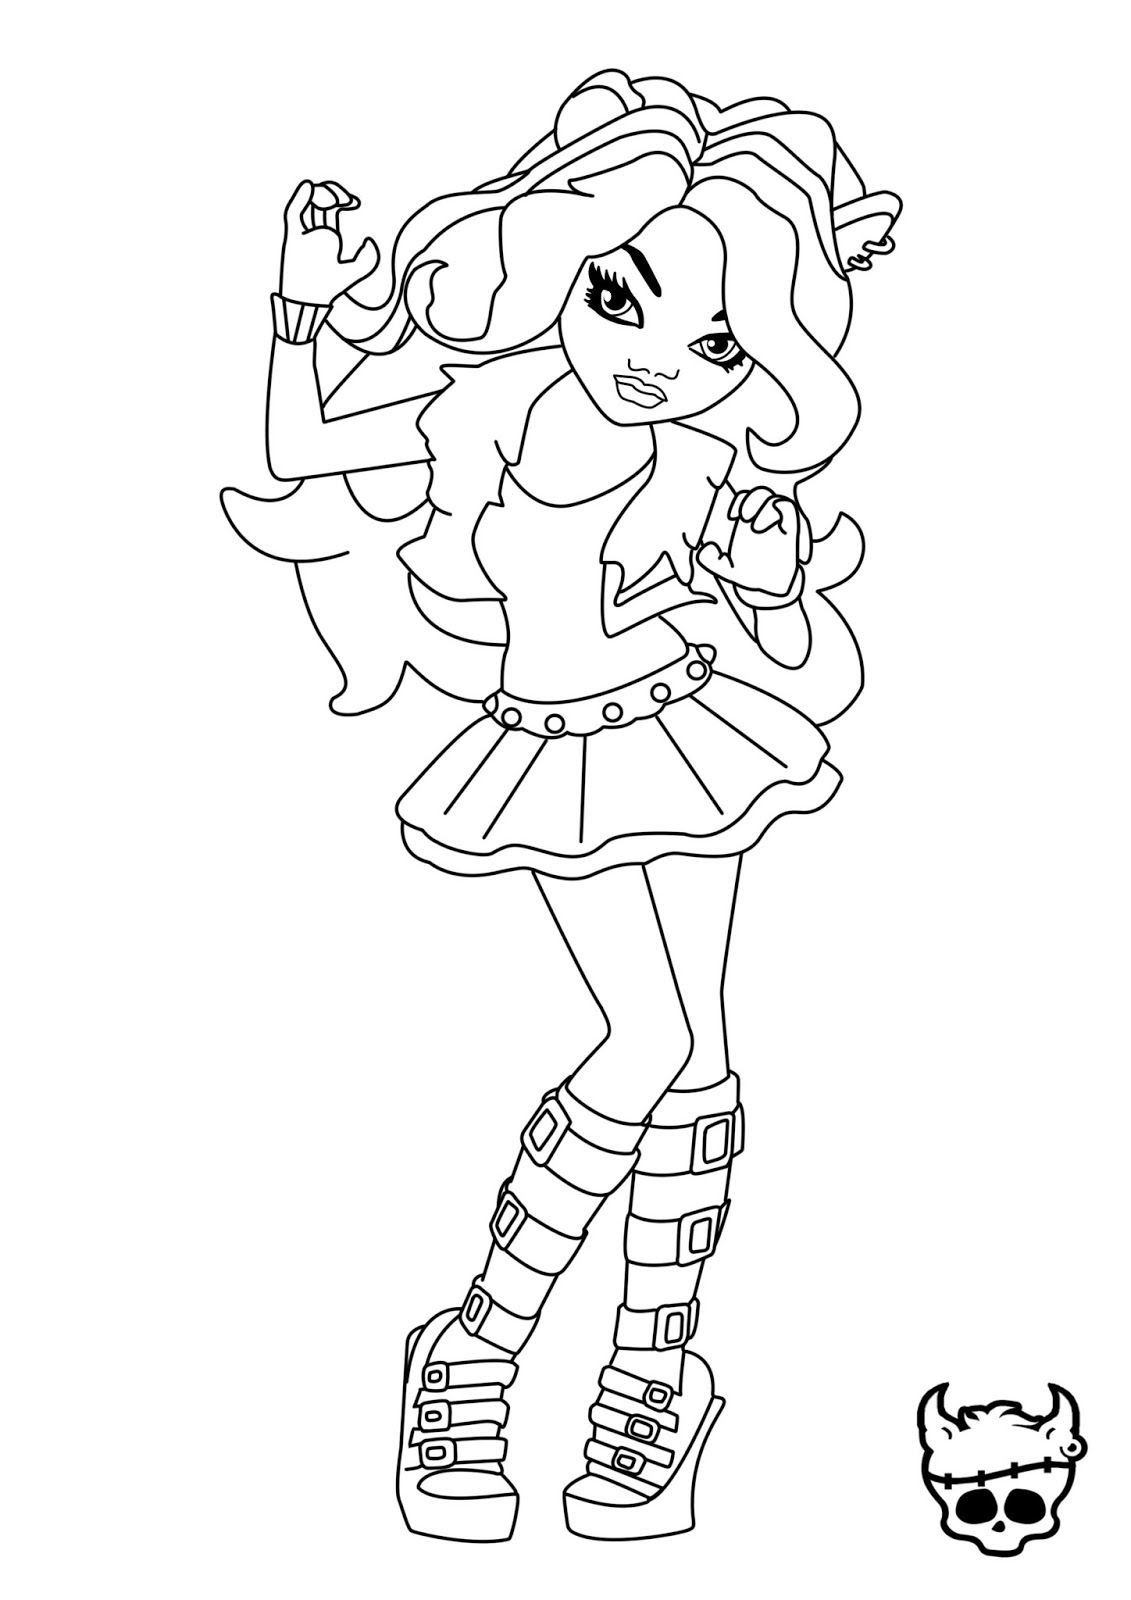 Clawdeen Wolf Coloring Pages at GetColorings.com | Free ...